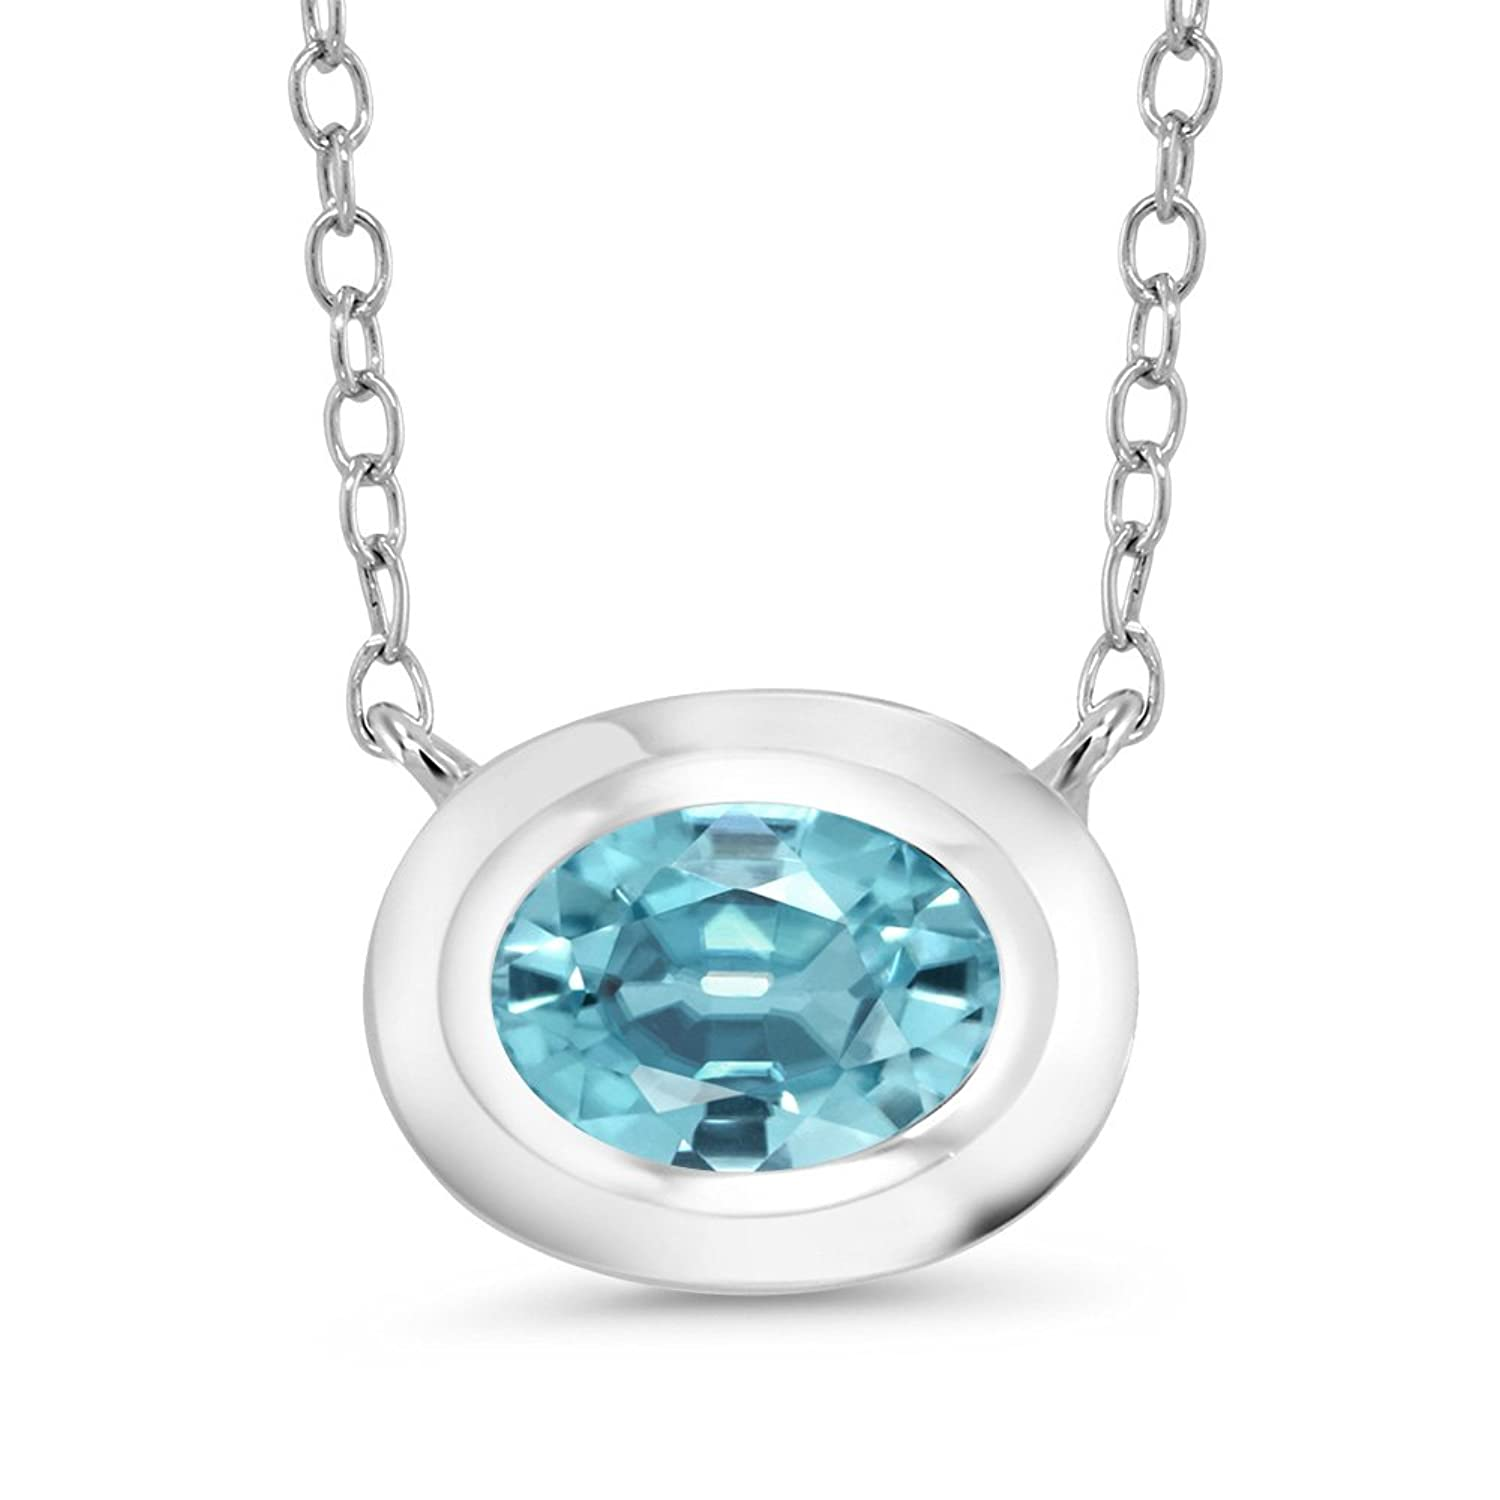 1.20 Ct Oval Blue Zircon 925 Sterling Silver Pendant With Chain